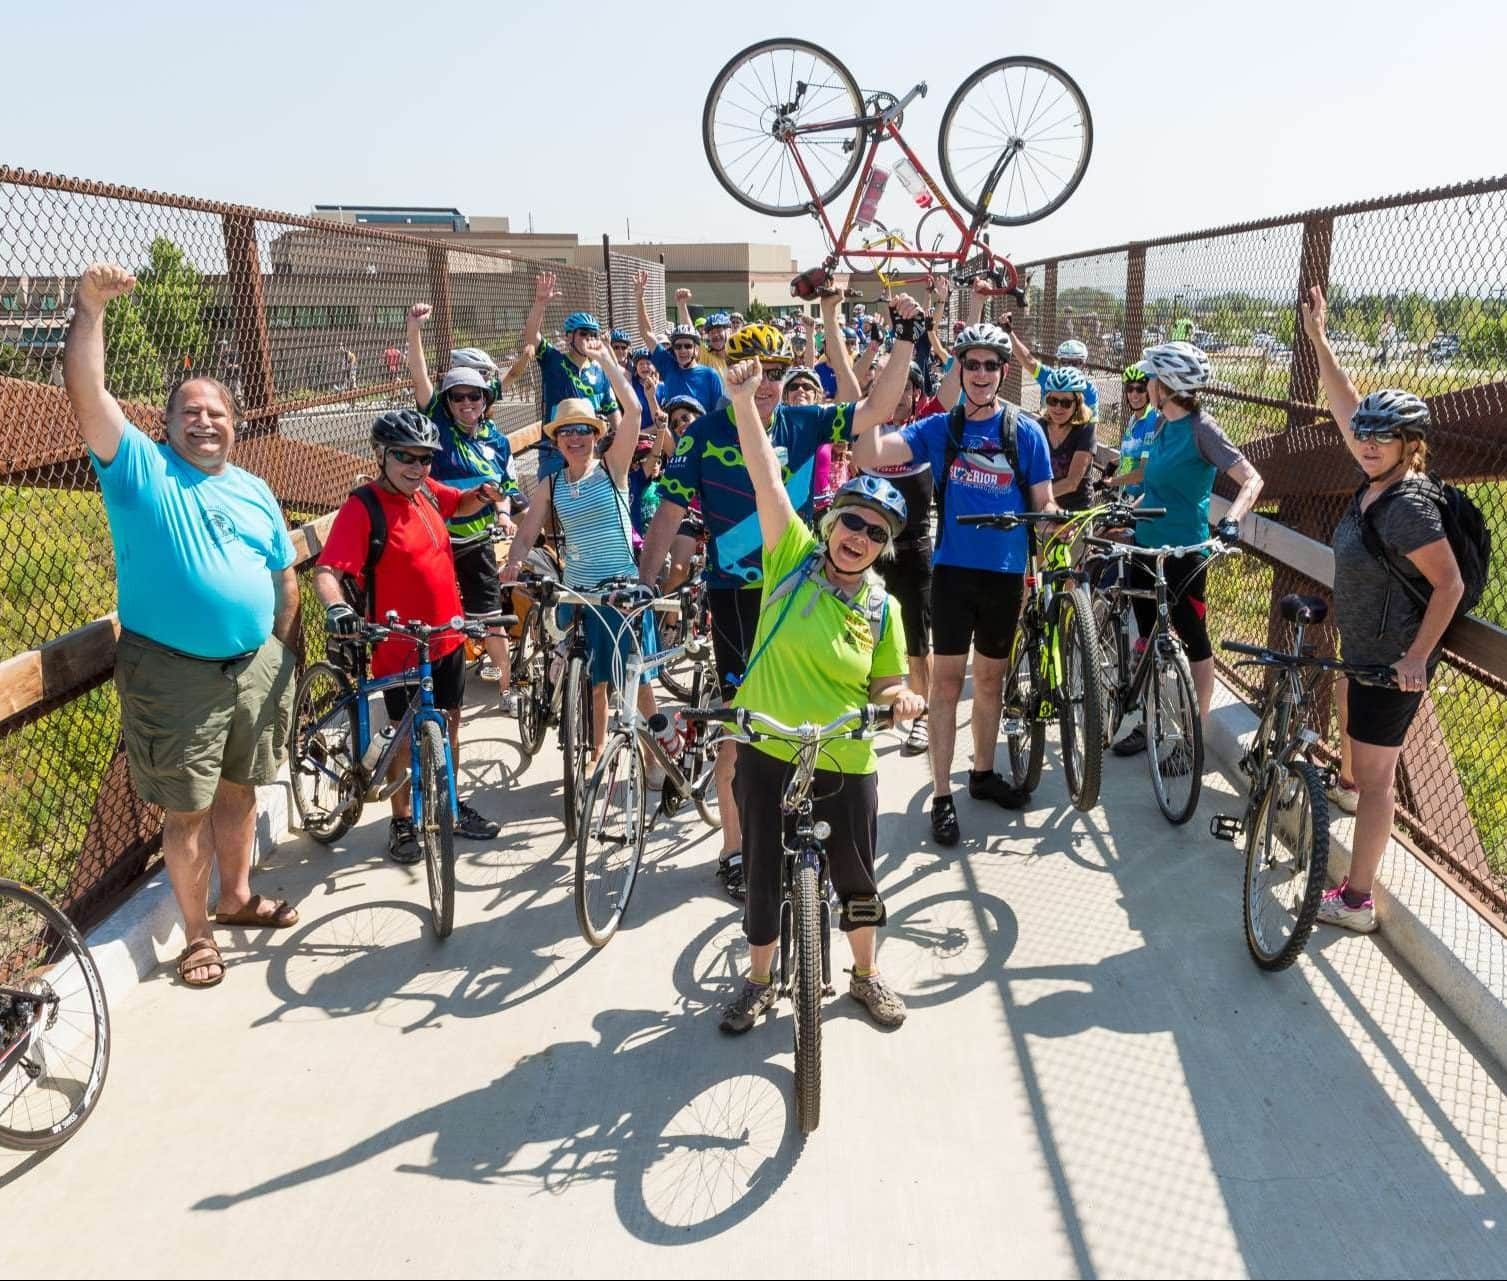 Cyclists celebrating the opening of the US 36 Bikeway from Louisville/Superior to Boulder.